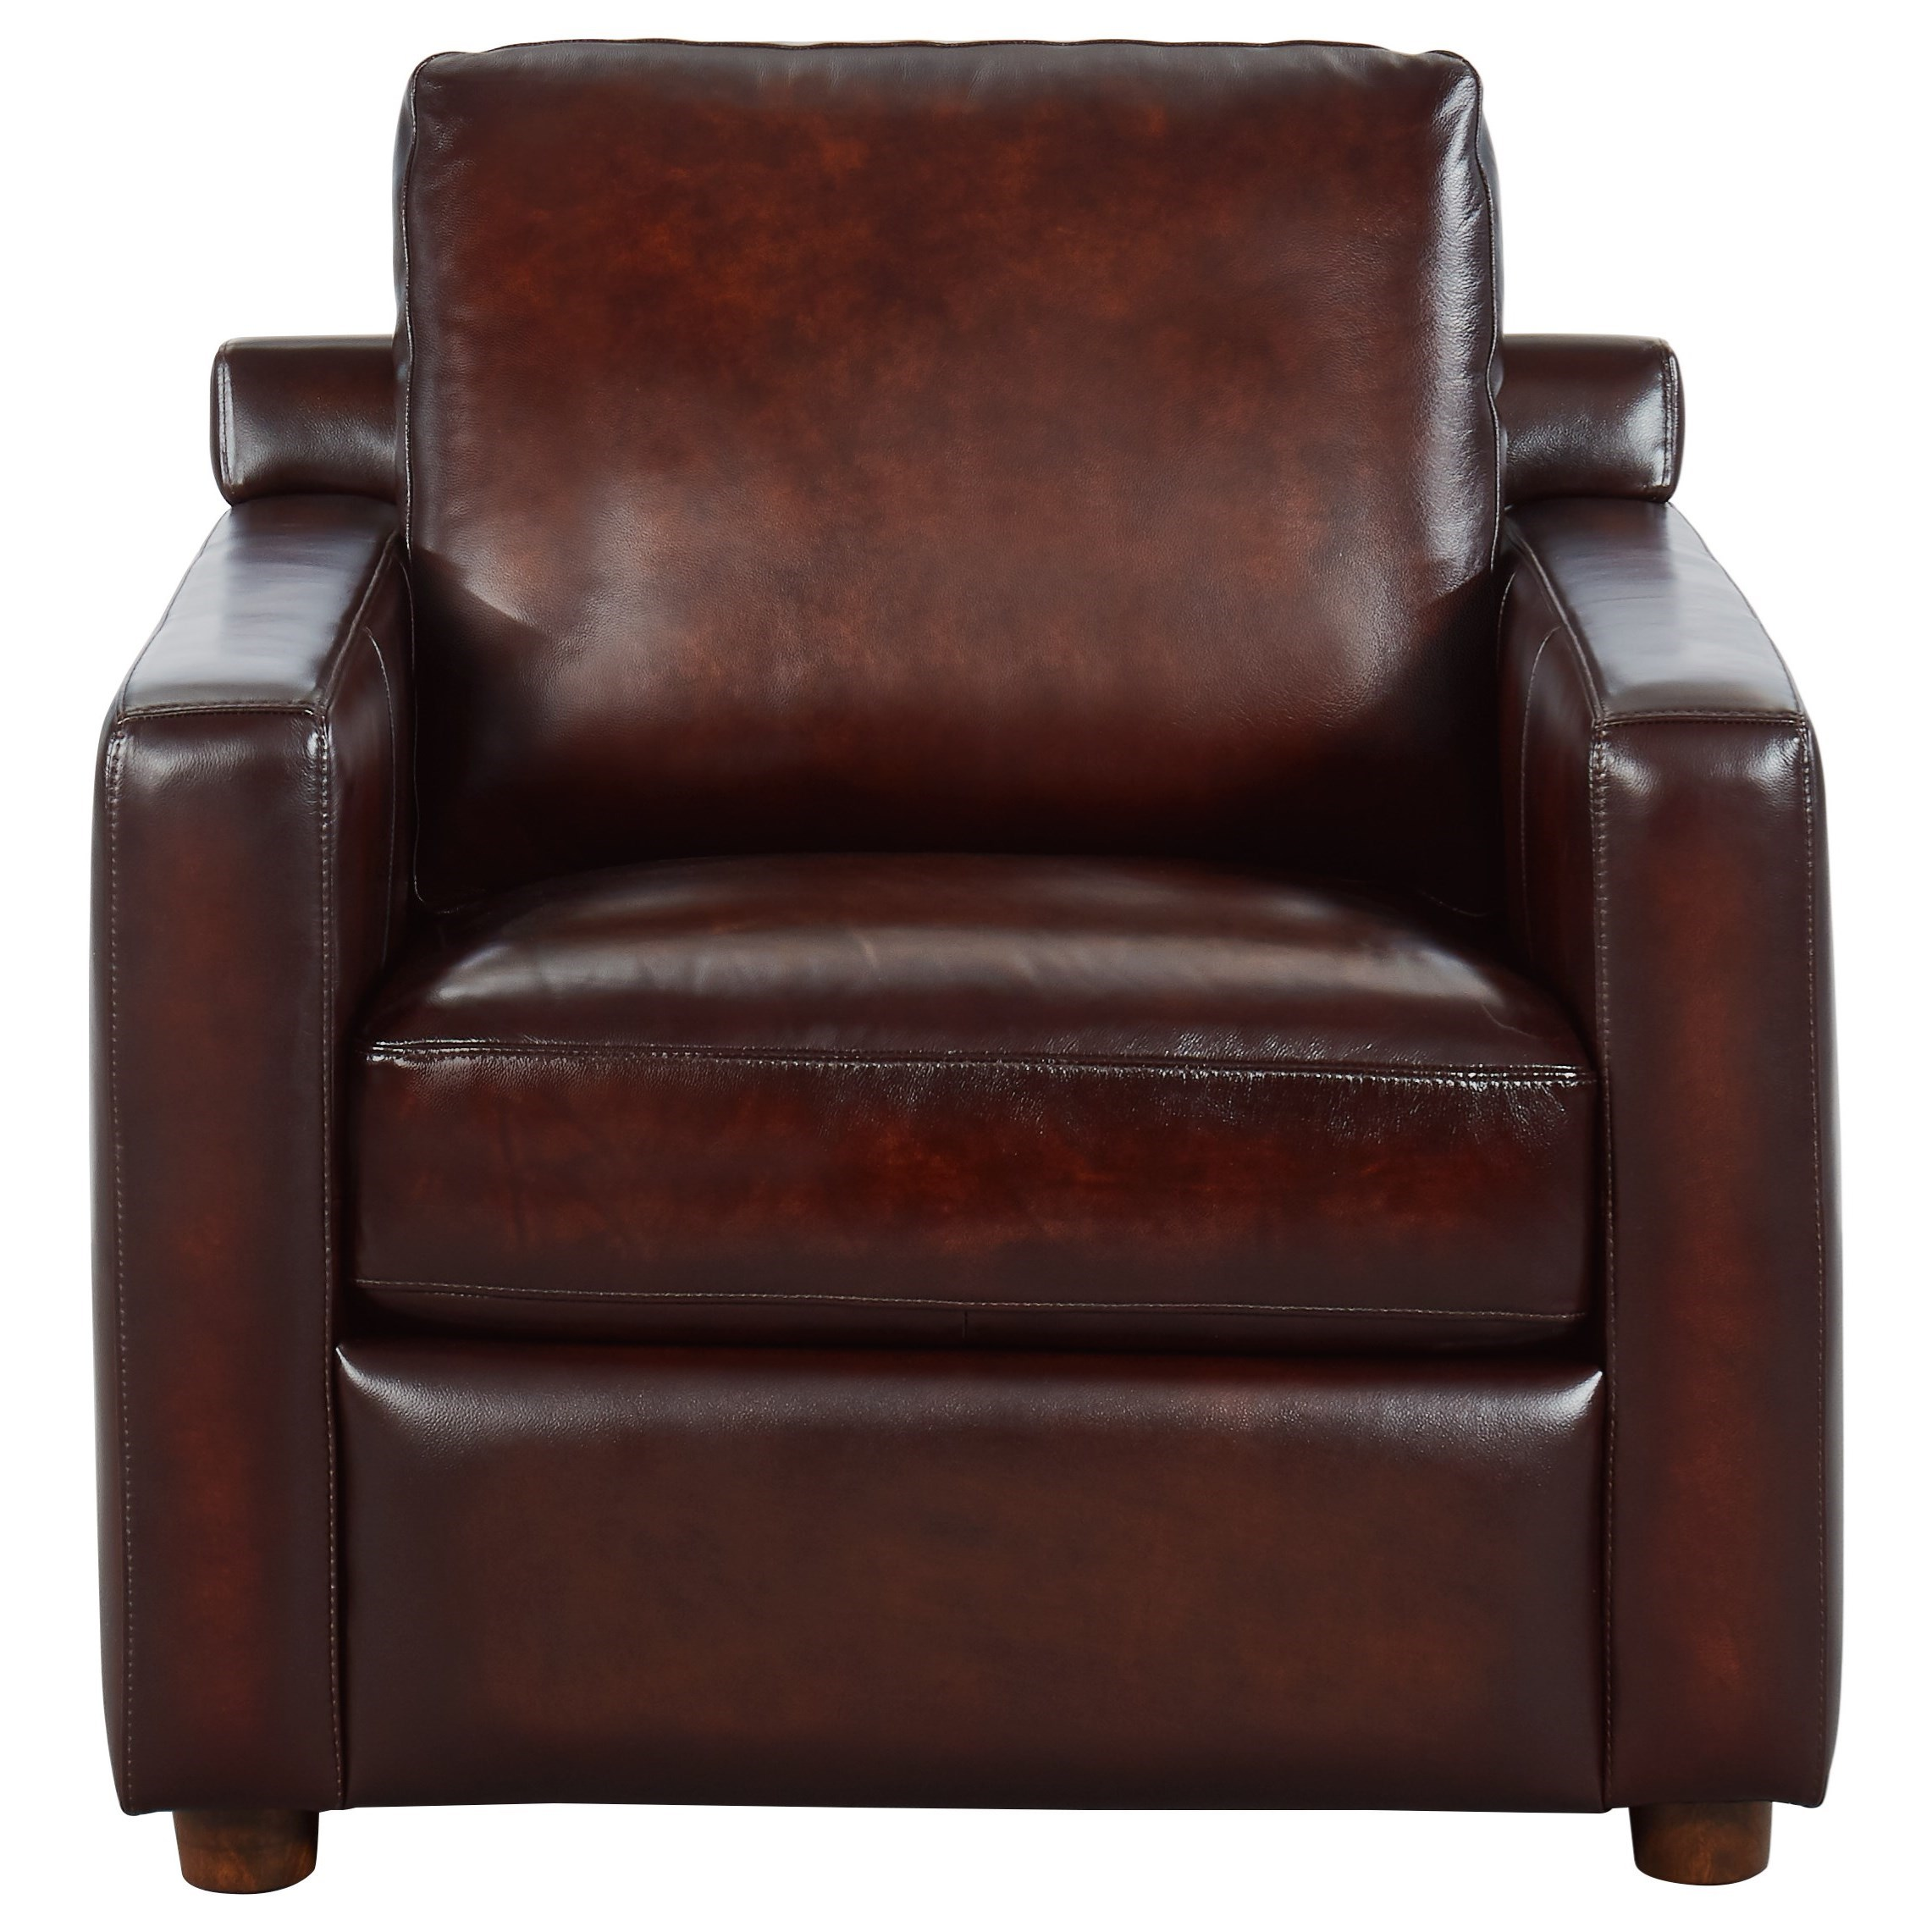 Stockton Leather Chair at Rotmans